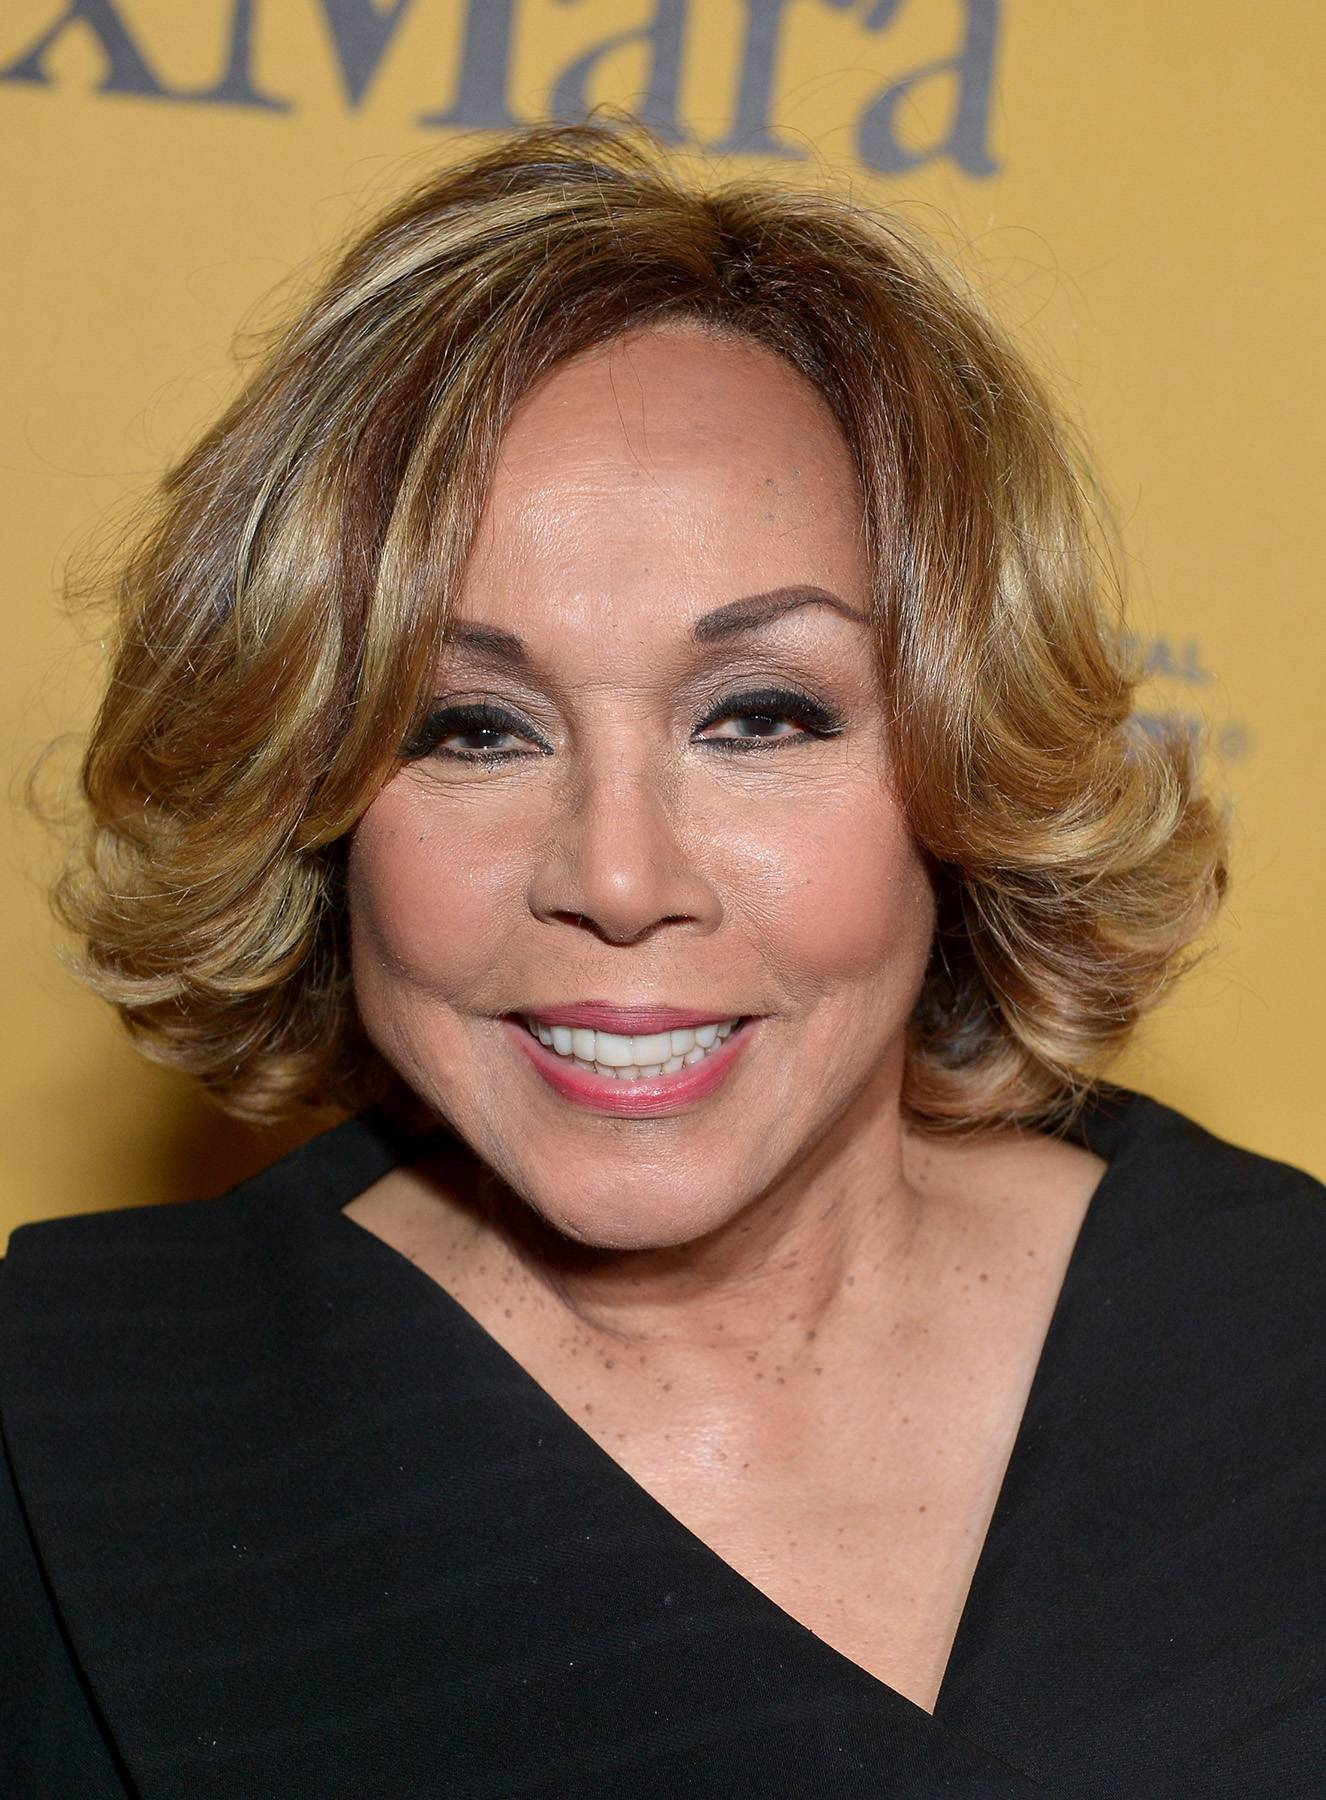 Diahann Carroll - Actress Diahann Carroll will elegantly take the stage to present at The BET Honors '15. (Photo: Charley Gallay/Getty Images for Women In Film/MaxMara)